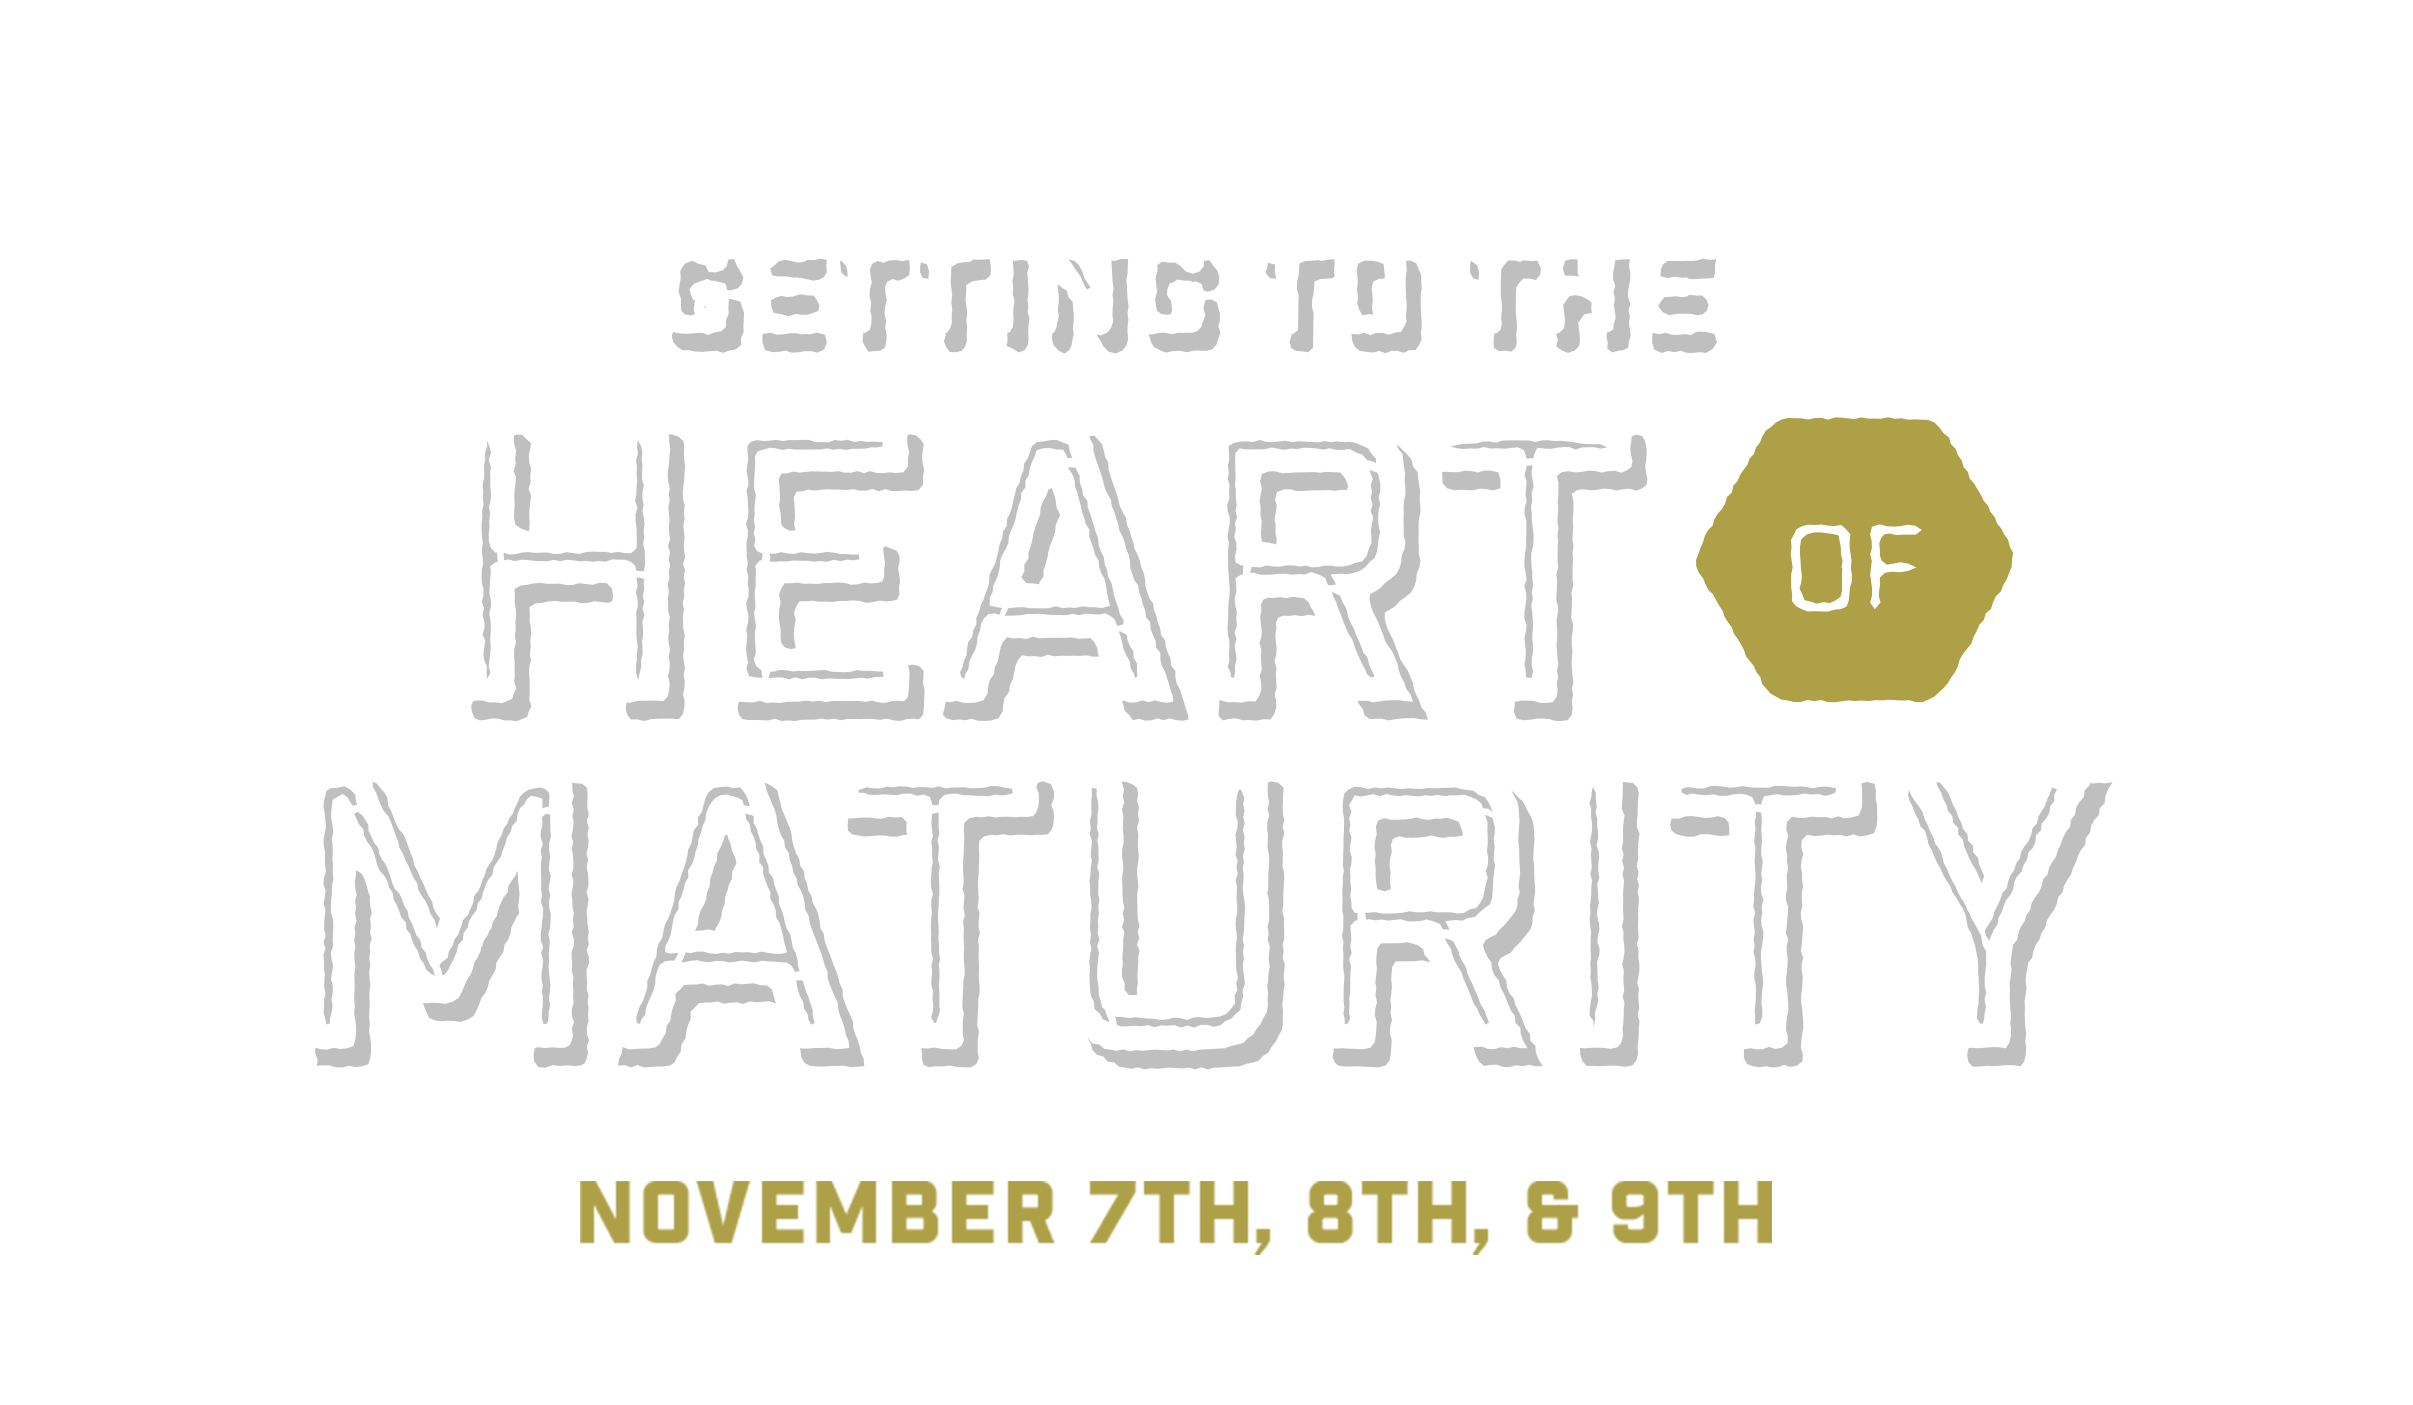 Getting to the Heart of Maturity